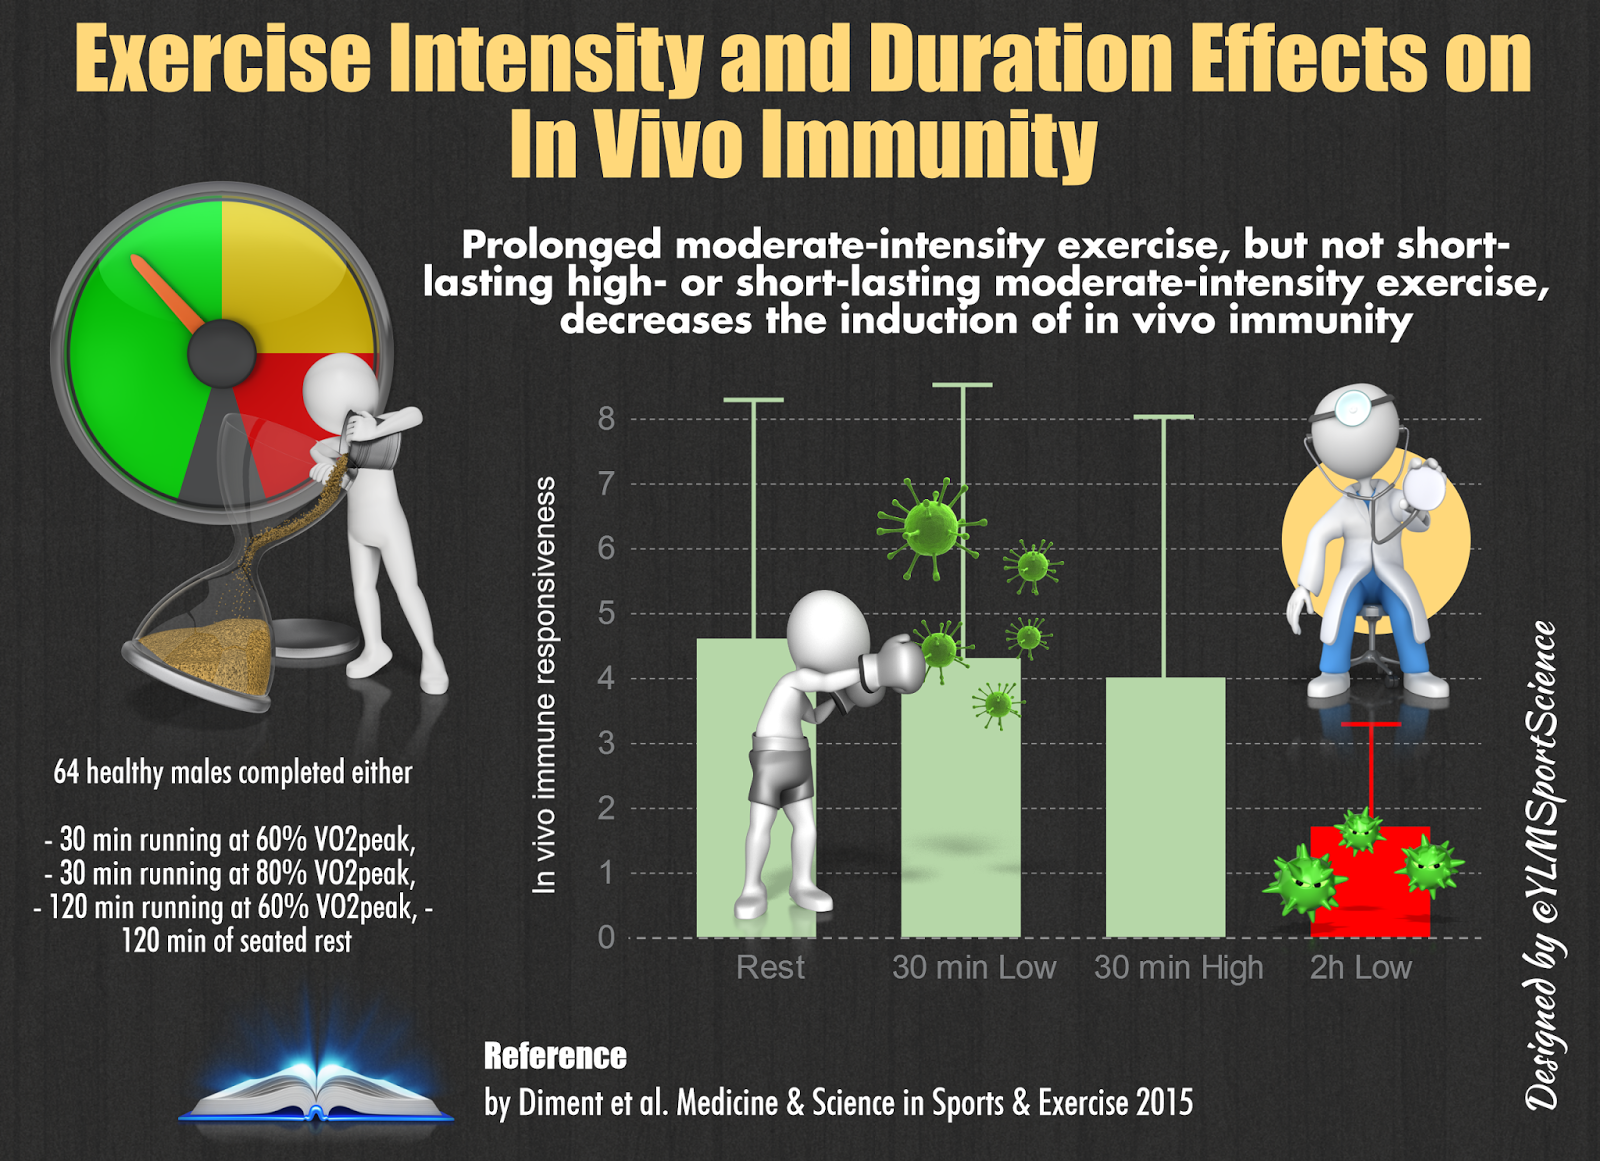 Long duration exercise reduces immune response greater than short-duration, high intensity.   From  YLM Sport Science